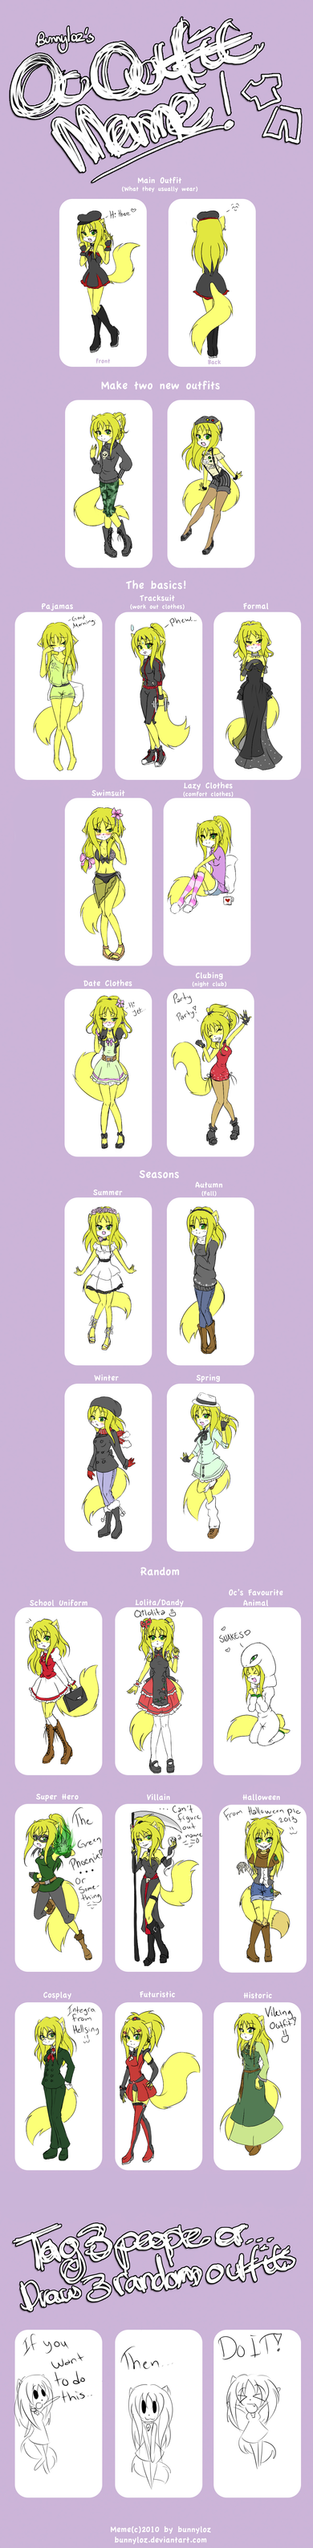 OC outfit Meme With Tei by Bjorkan